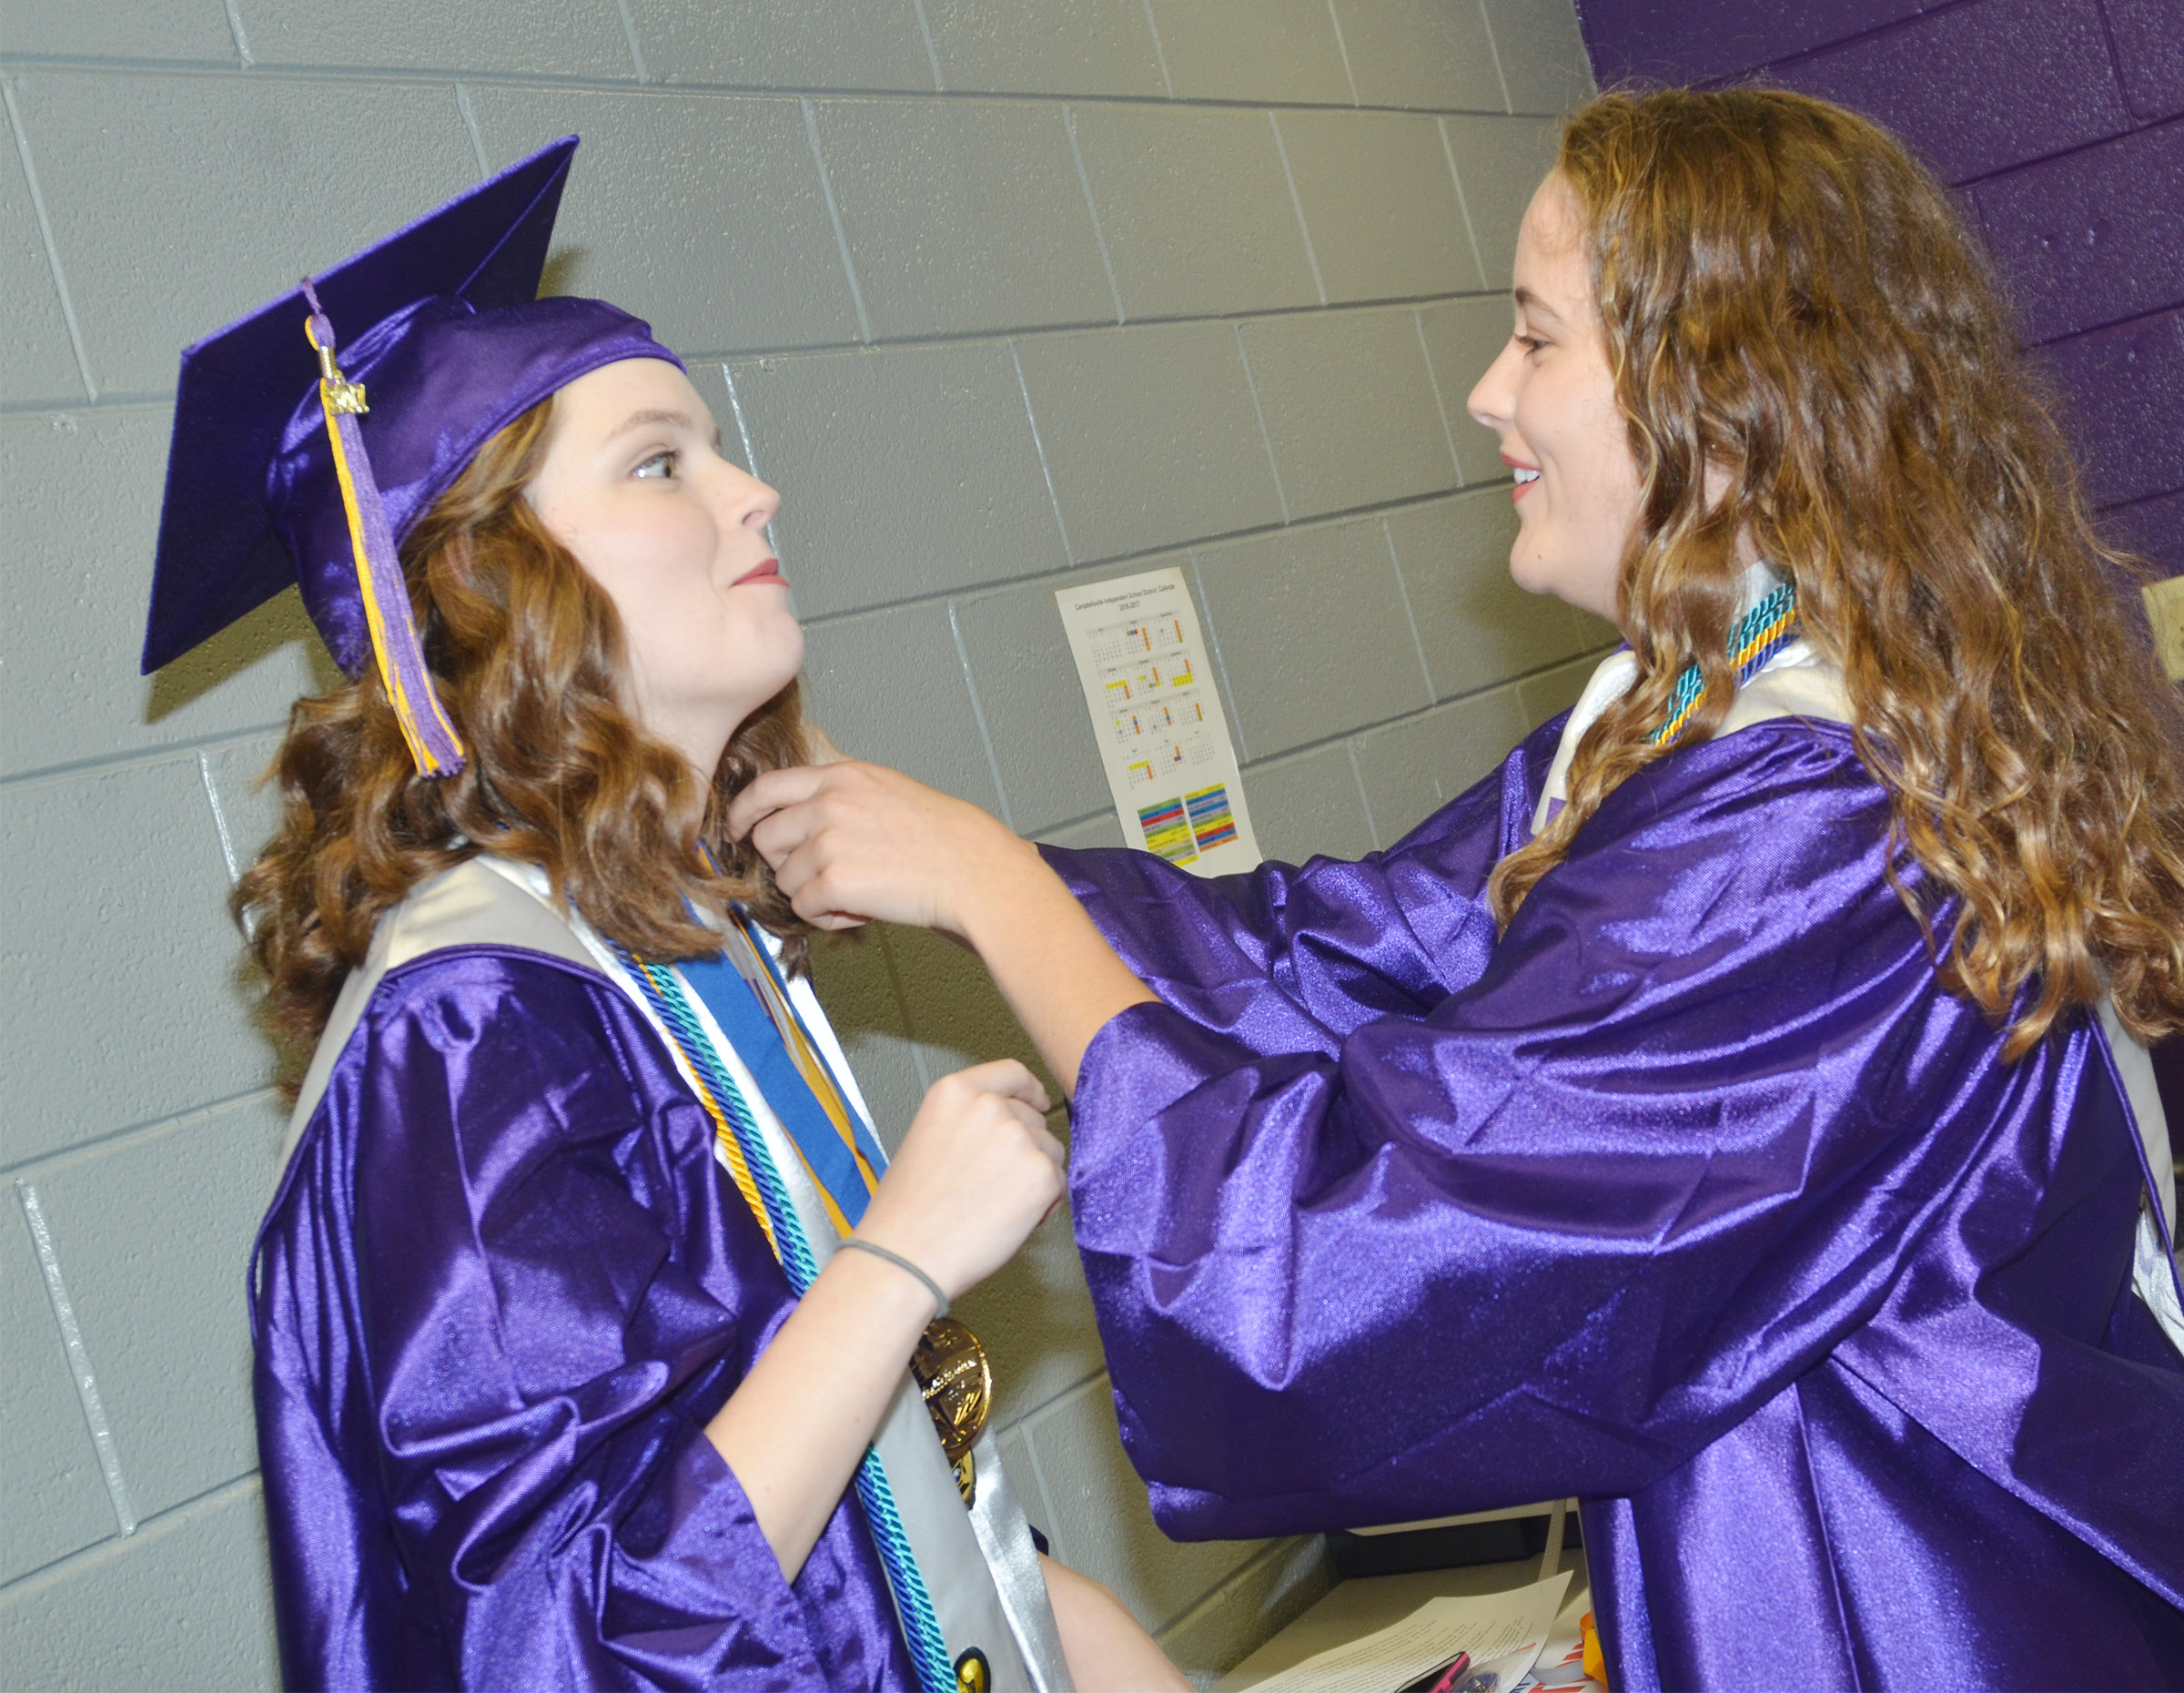 CHS senior Caroline McMahan, at right, helps classmate Blair Lamb straighten her honor cords before graduation.